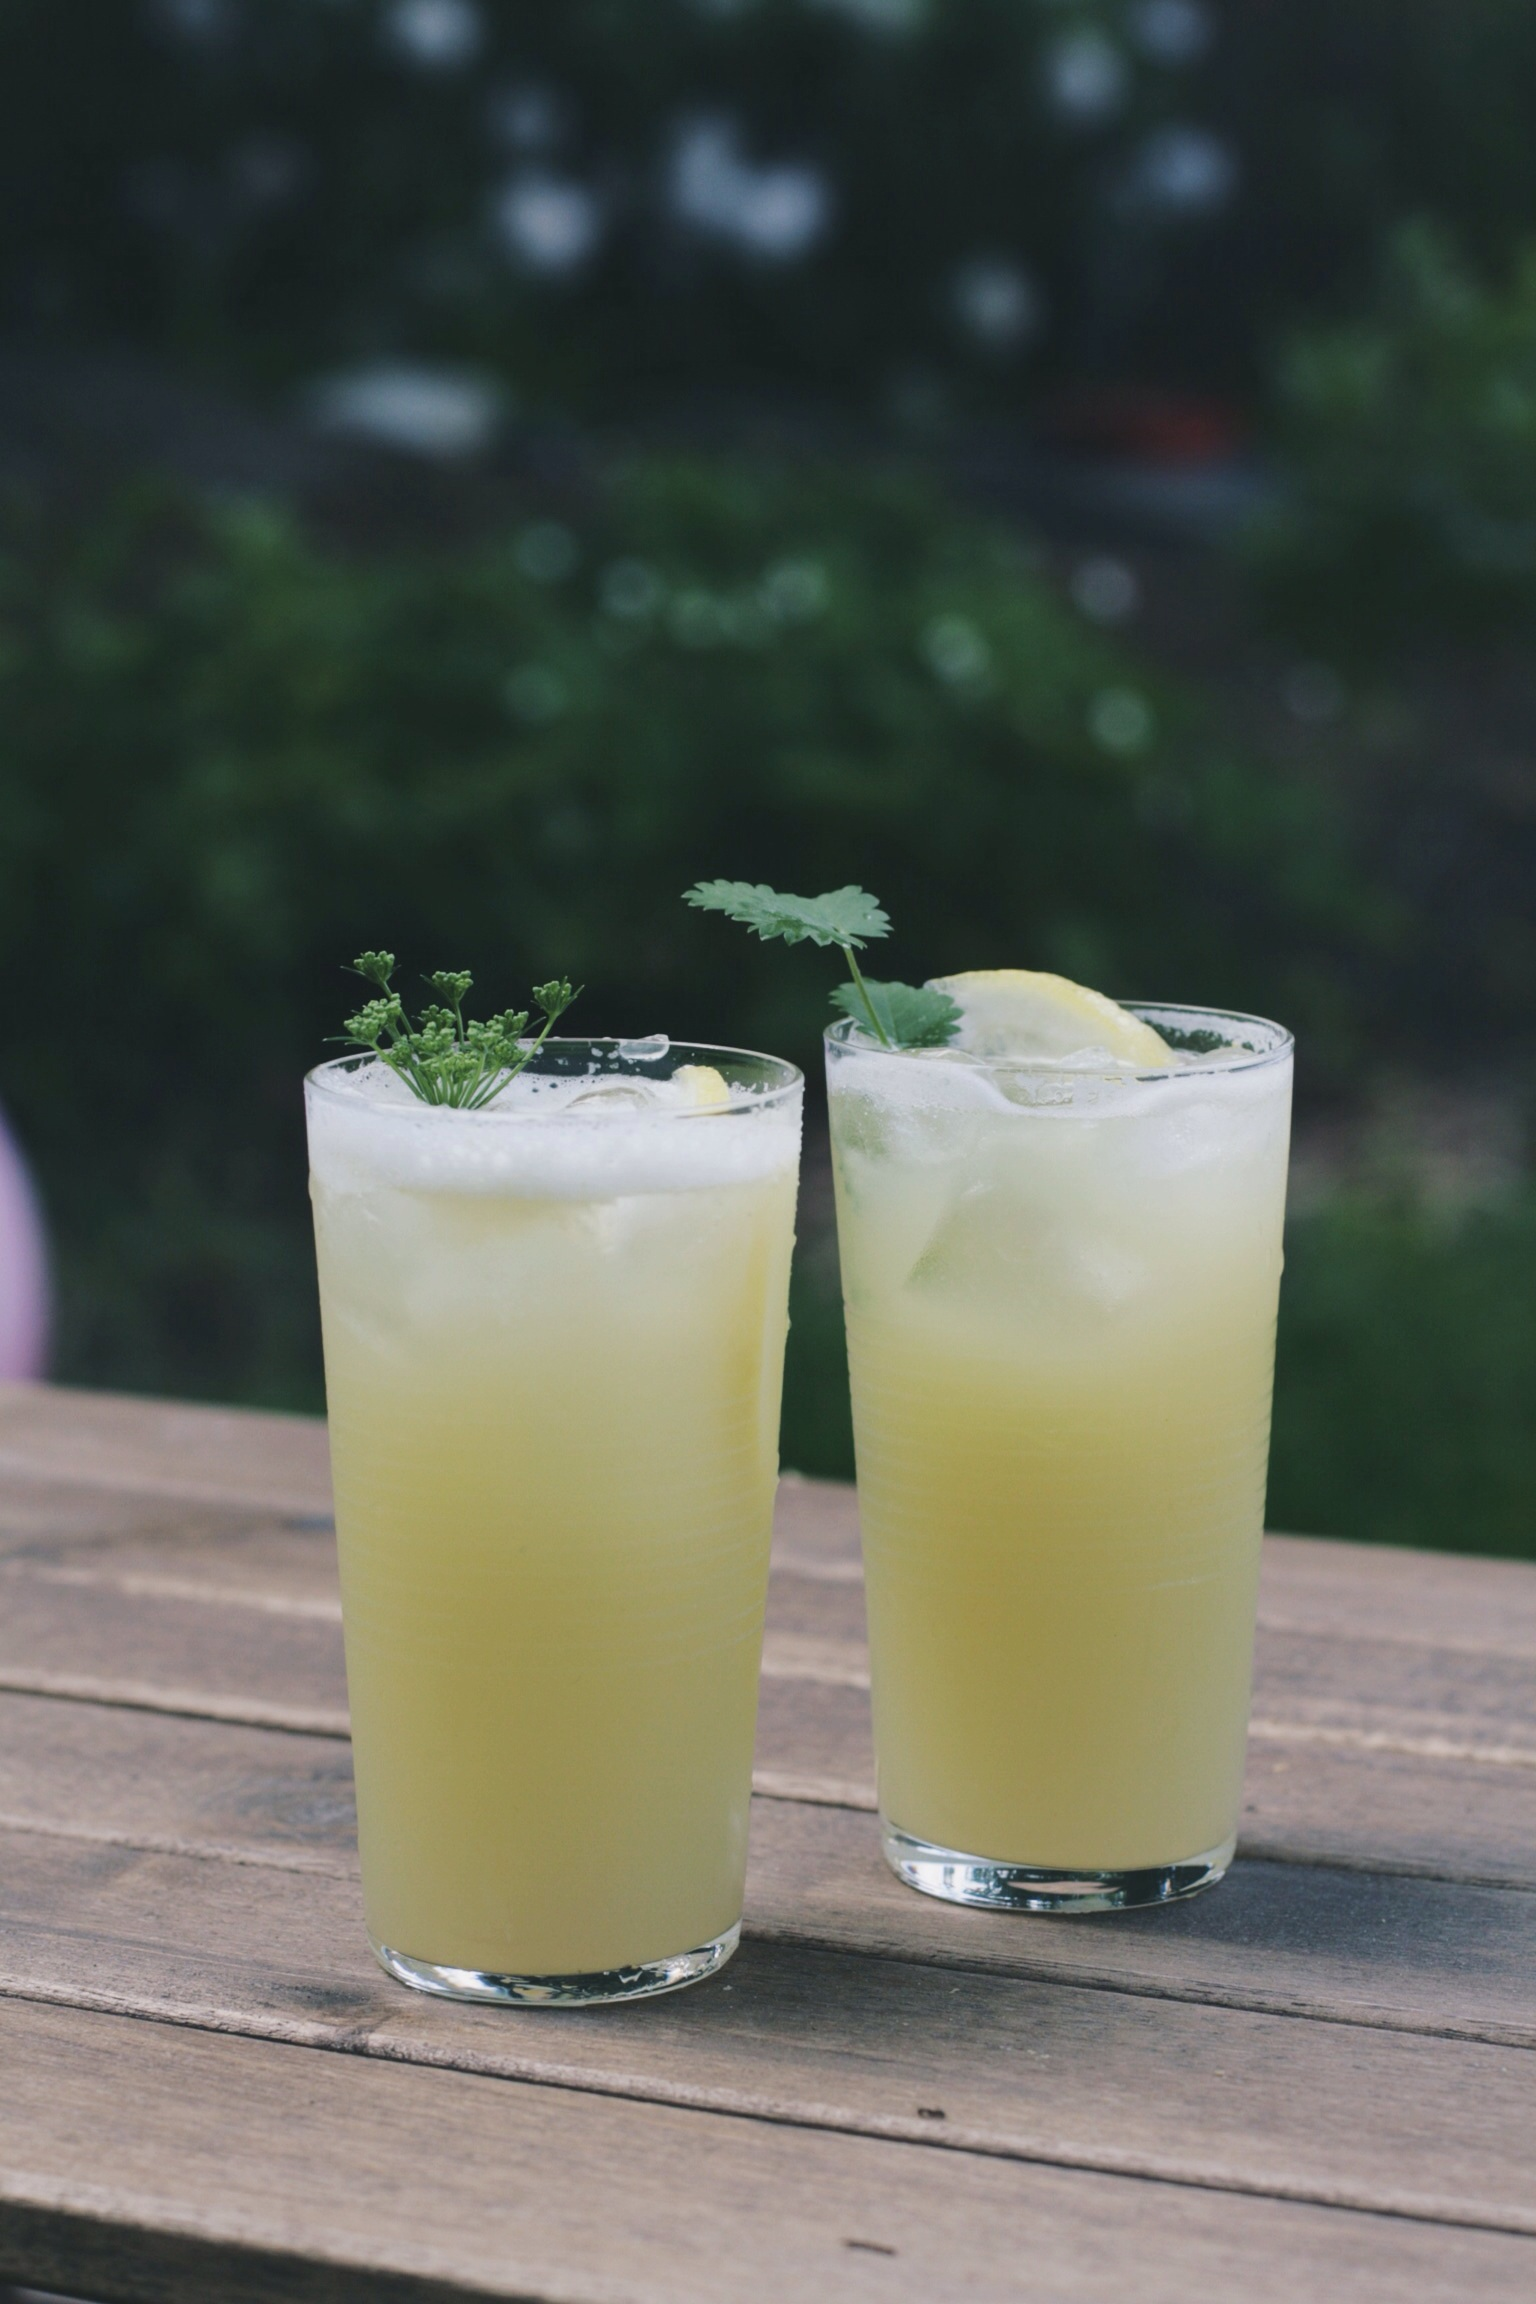 Garden cocktails are best enjoyed outside